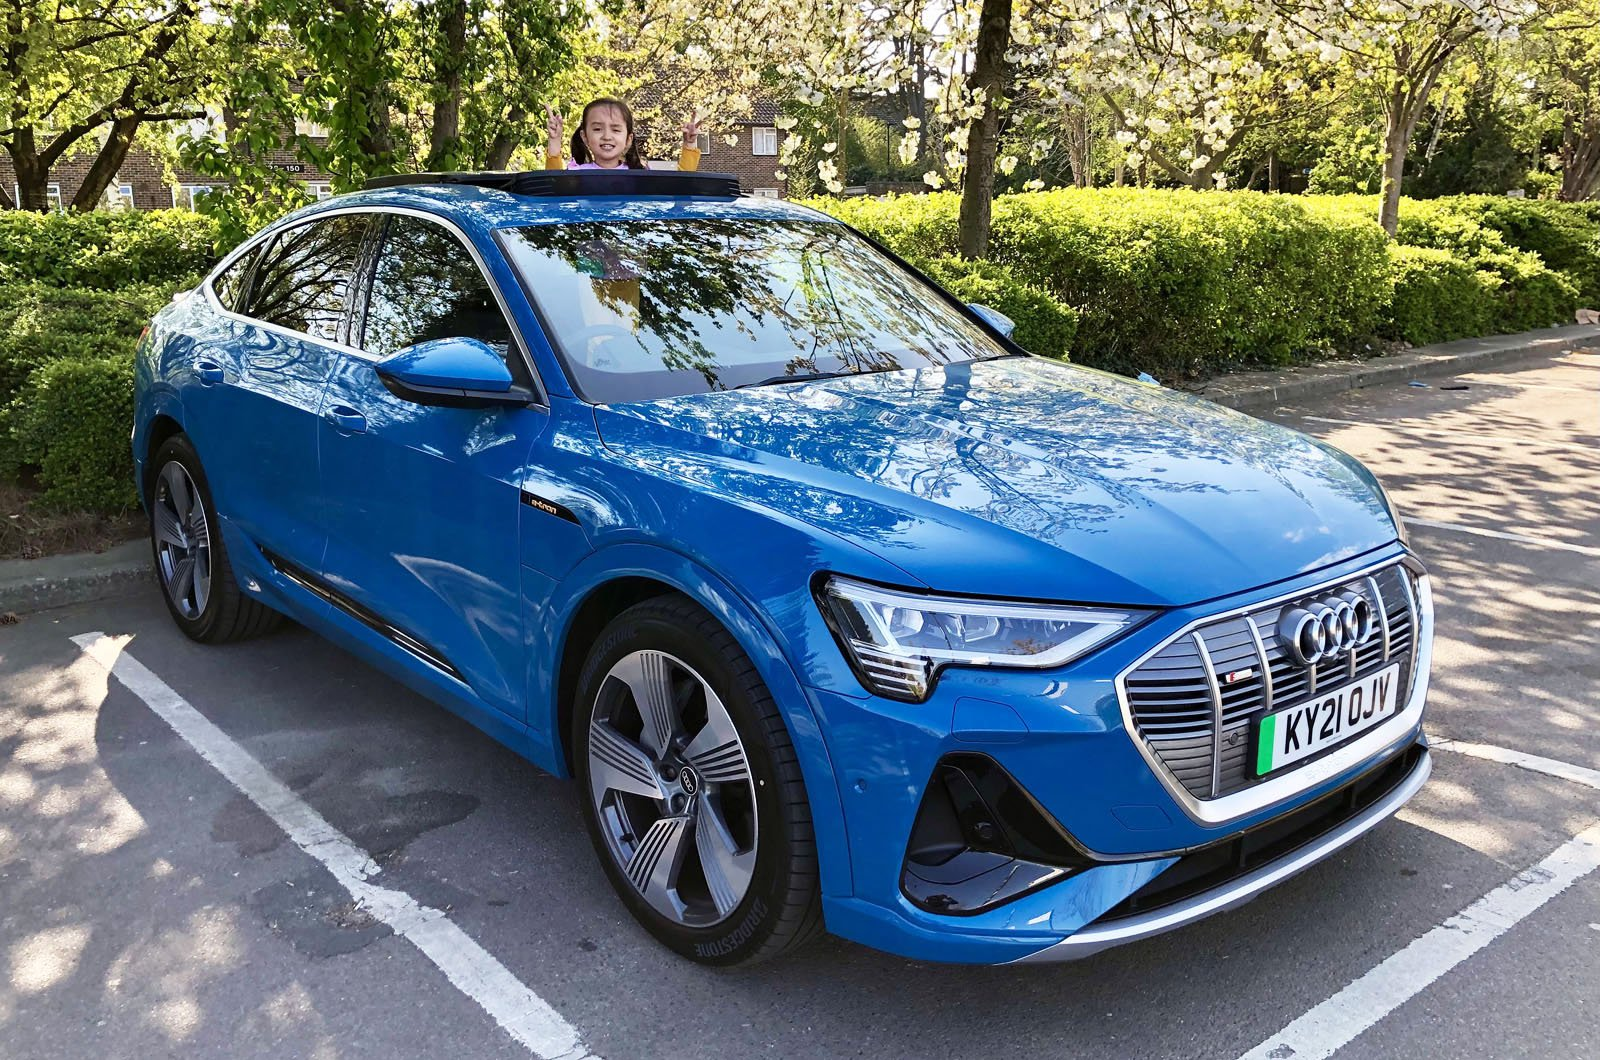 LT Audi E-tron Sportback with panoramic sunroof open